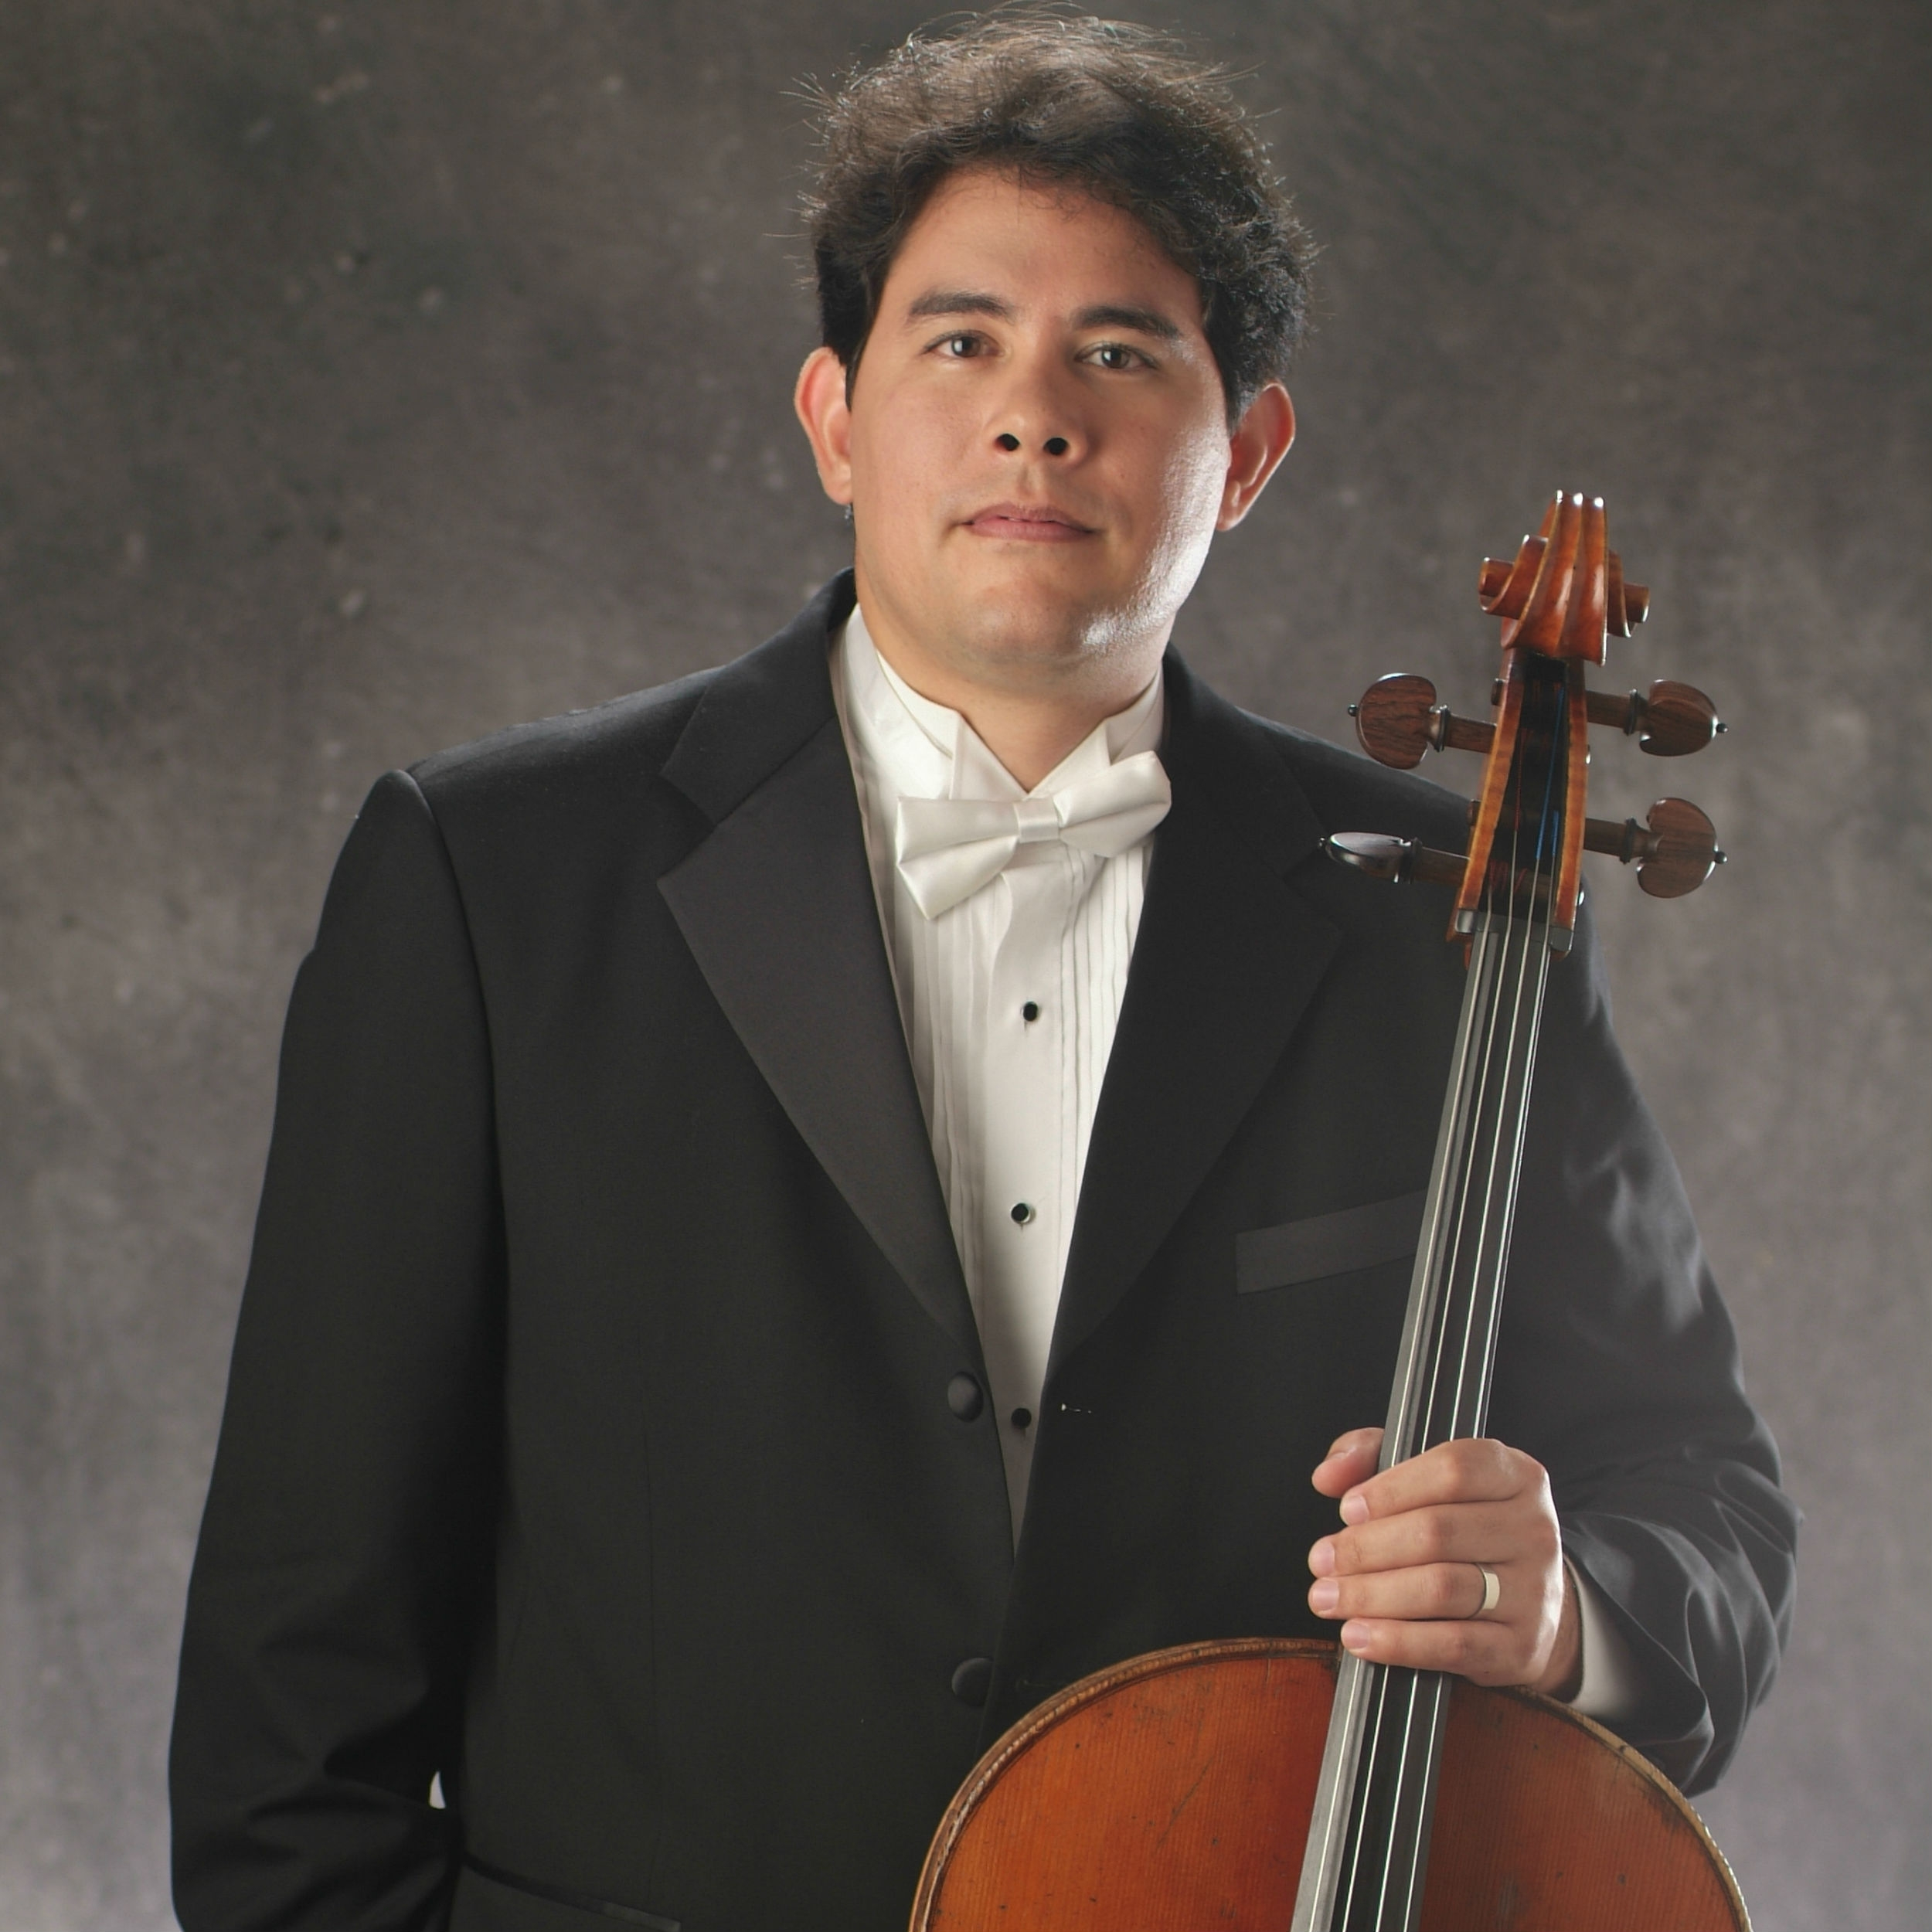 Stephen Framil, Cellist